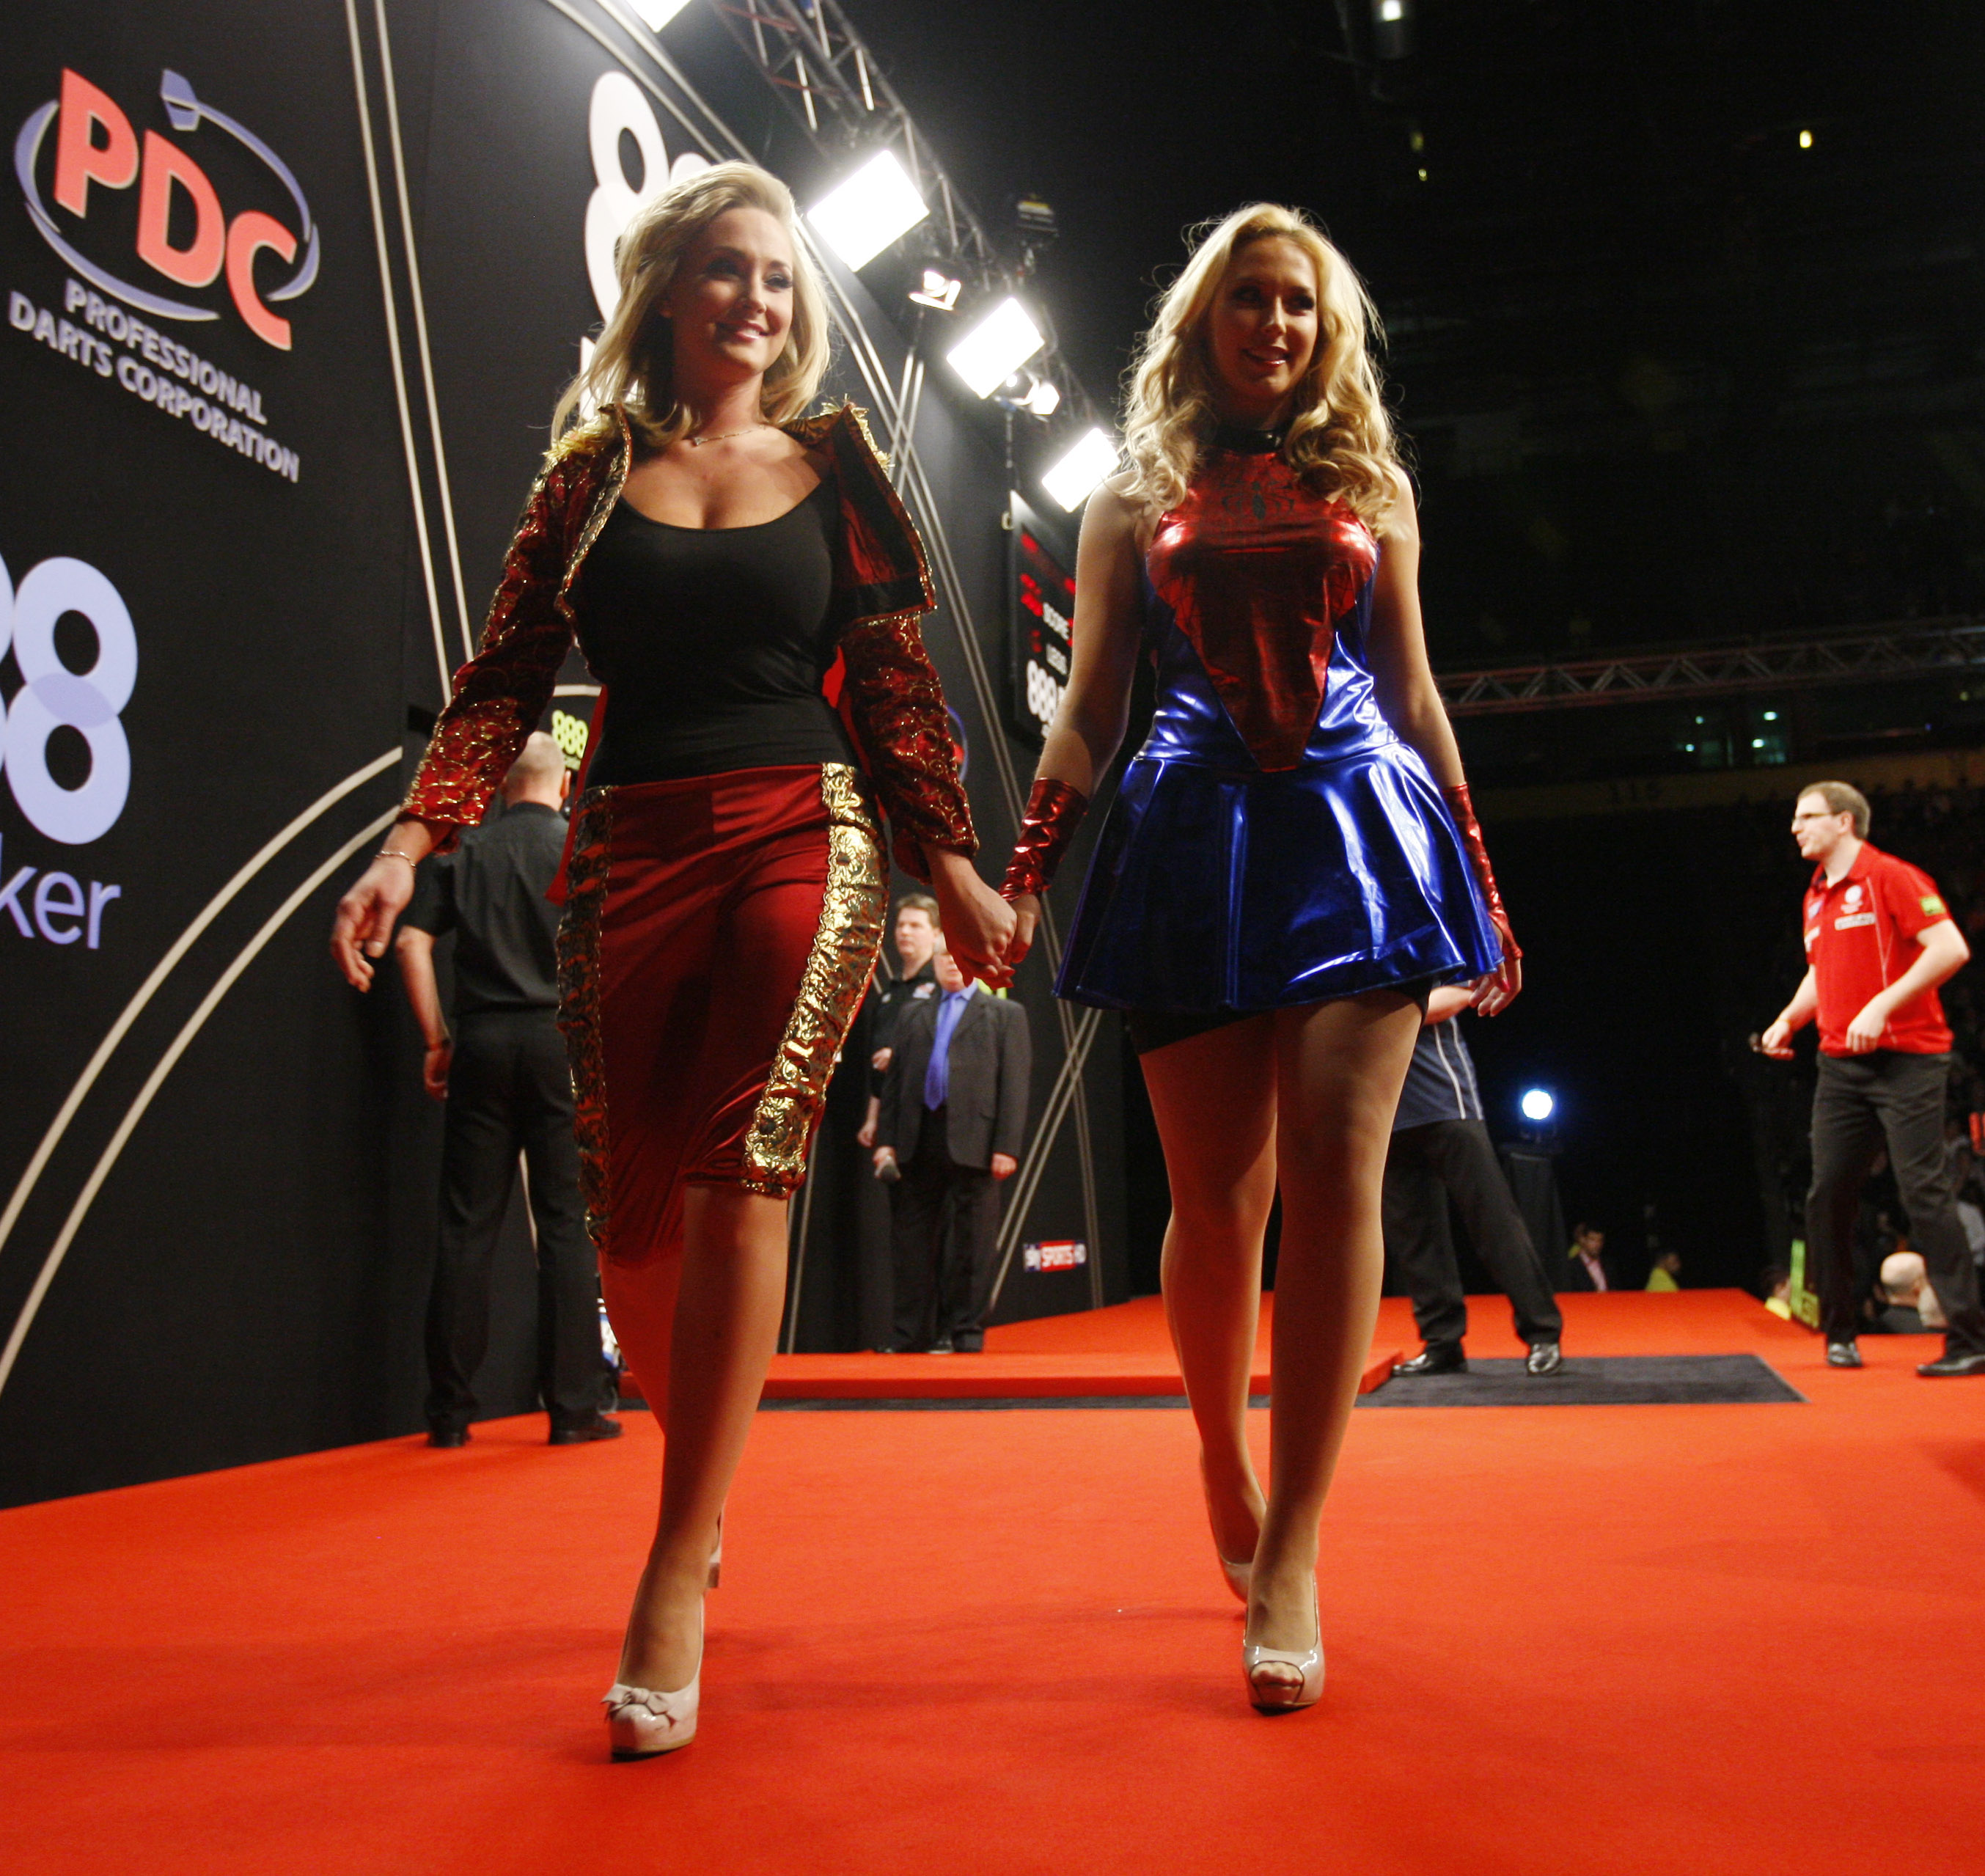 Walk On Girls Darts